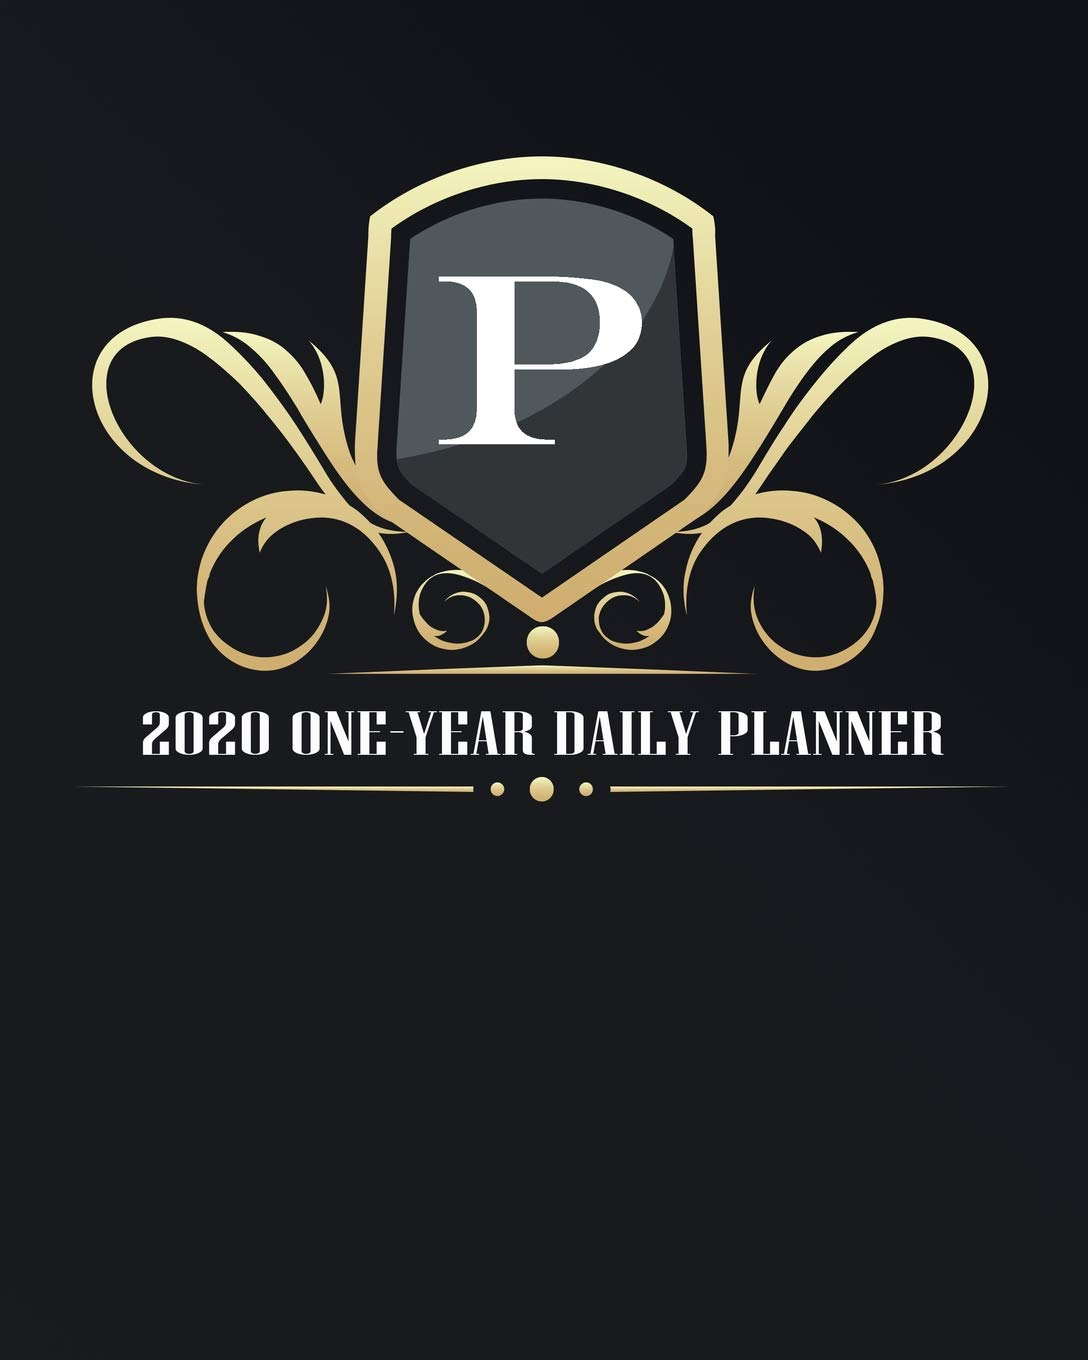 P - 2020 One Year Daily Planner: Elegant Black and Gold ...